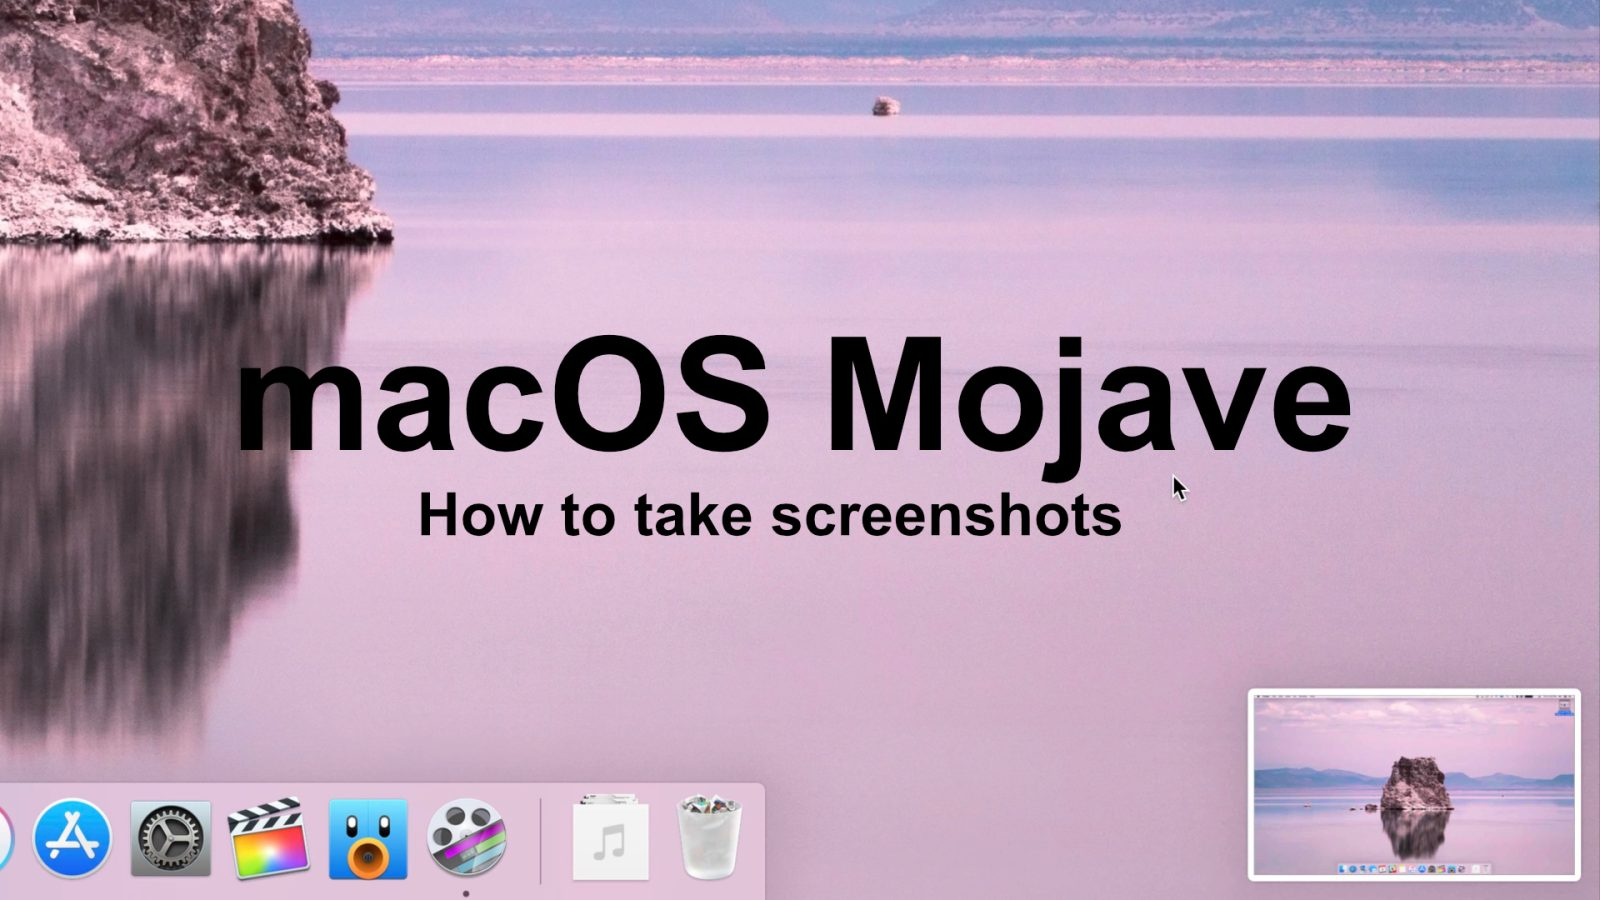 How to master macOS Mojave screenshots [Video] - 9to5Mac